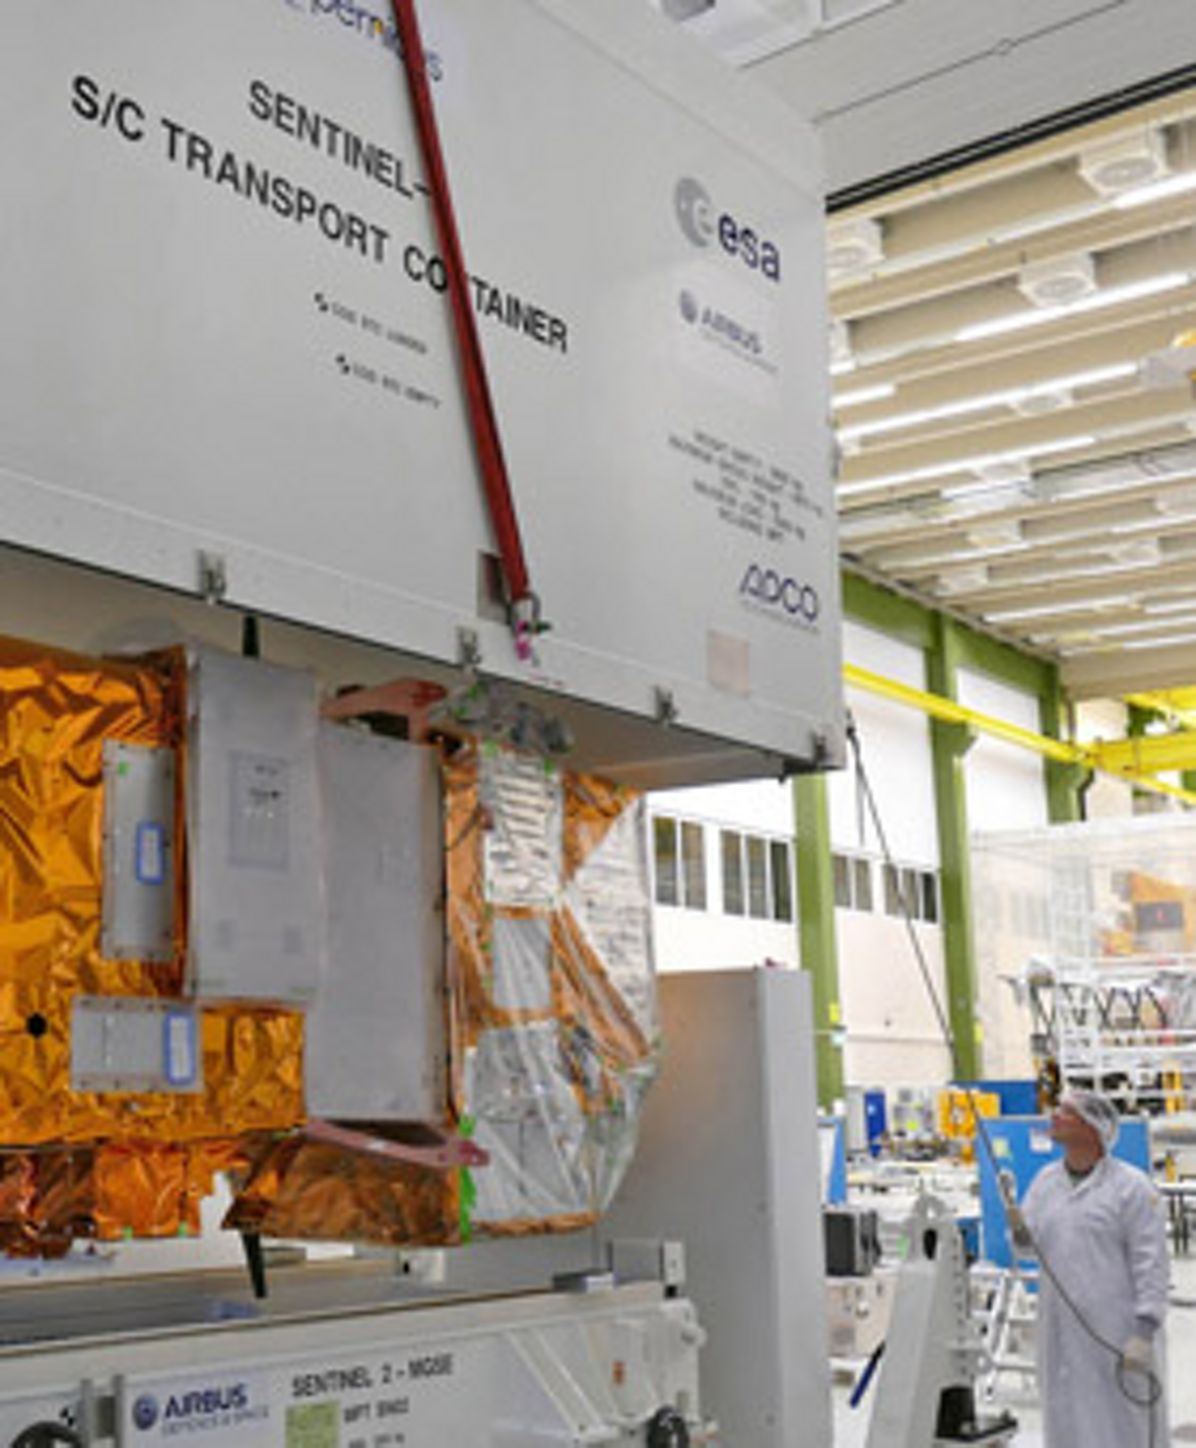 Sentinel-2B- Closing of Container, Sentinel-2B packed for transport